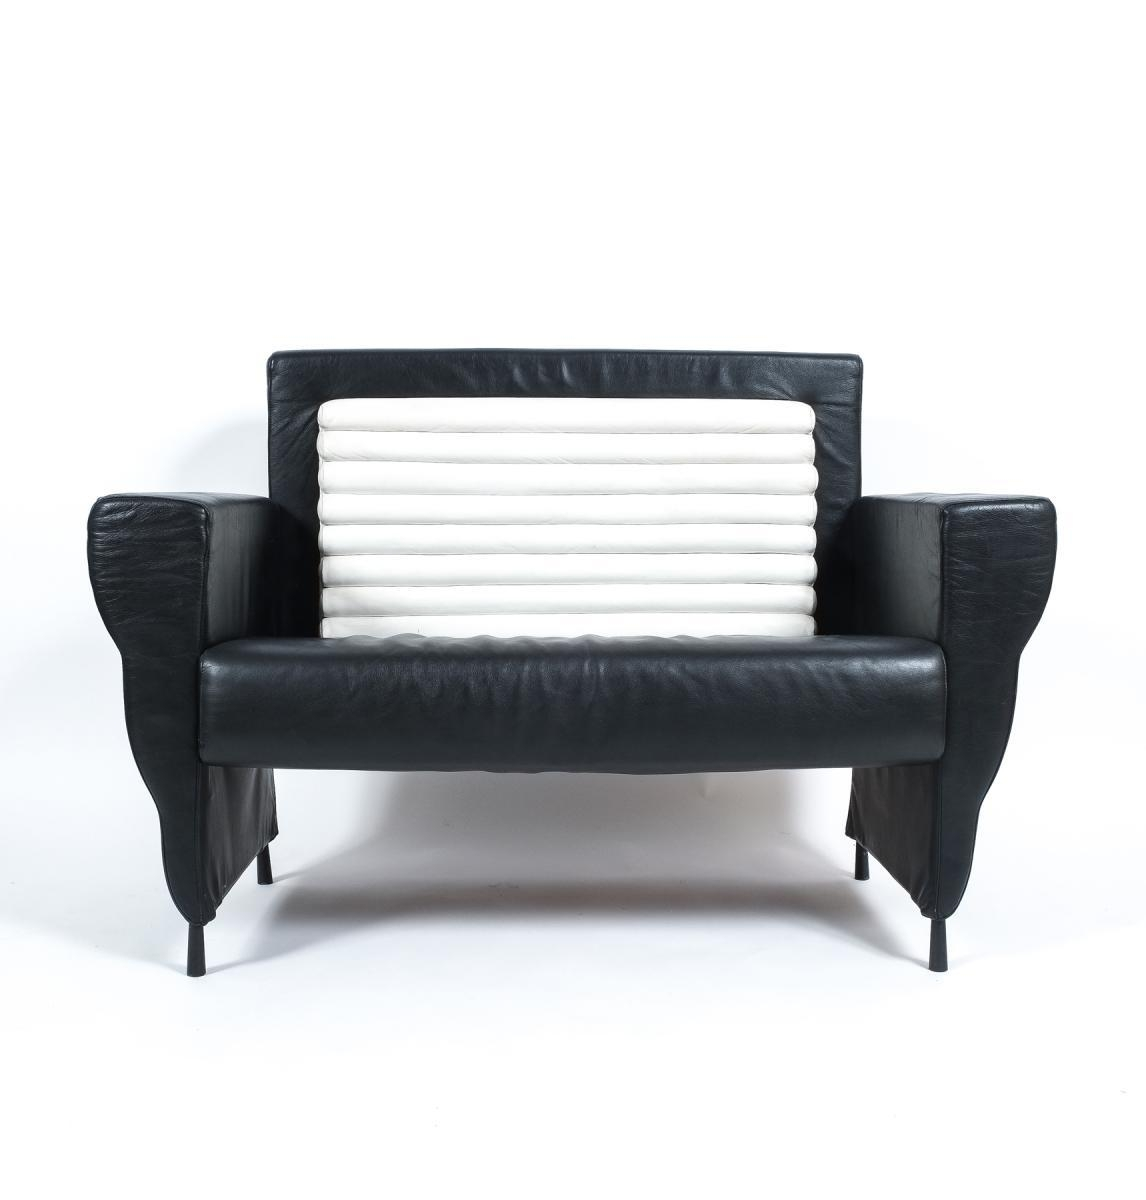 Flessuosa Series Black & White Leather Sofaugo La Pietra For In Black And White Leather Sofas (View 19 of 20)